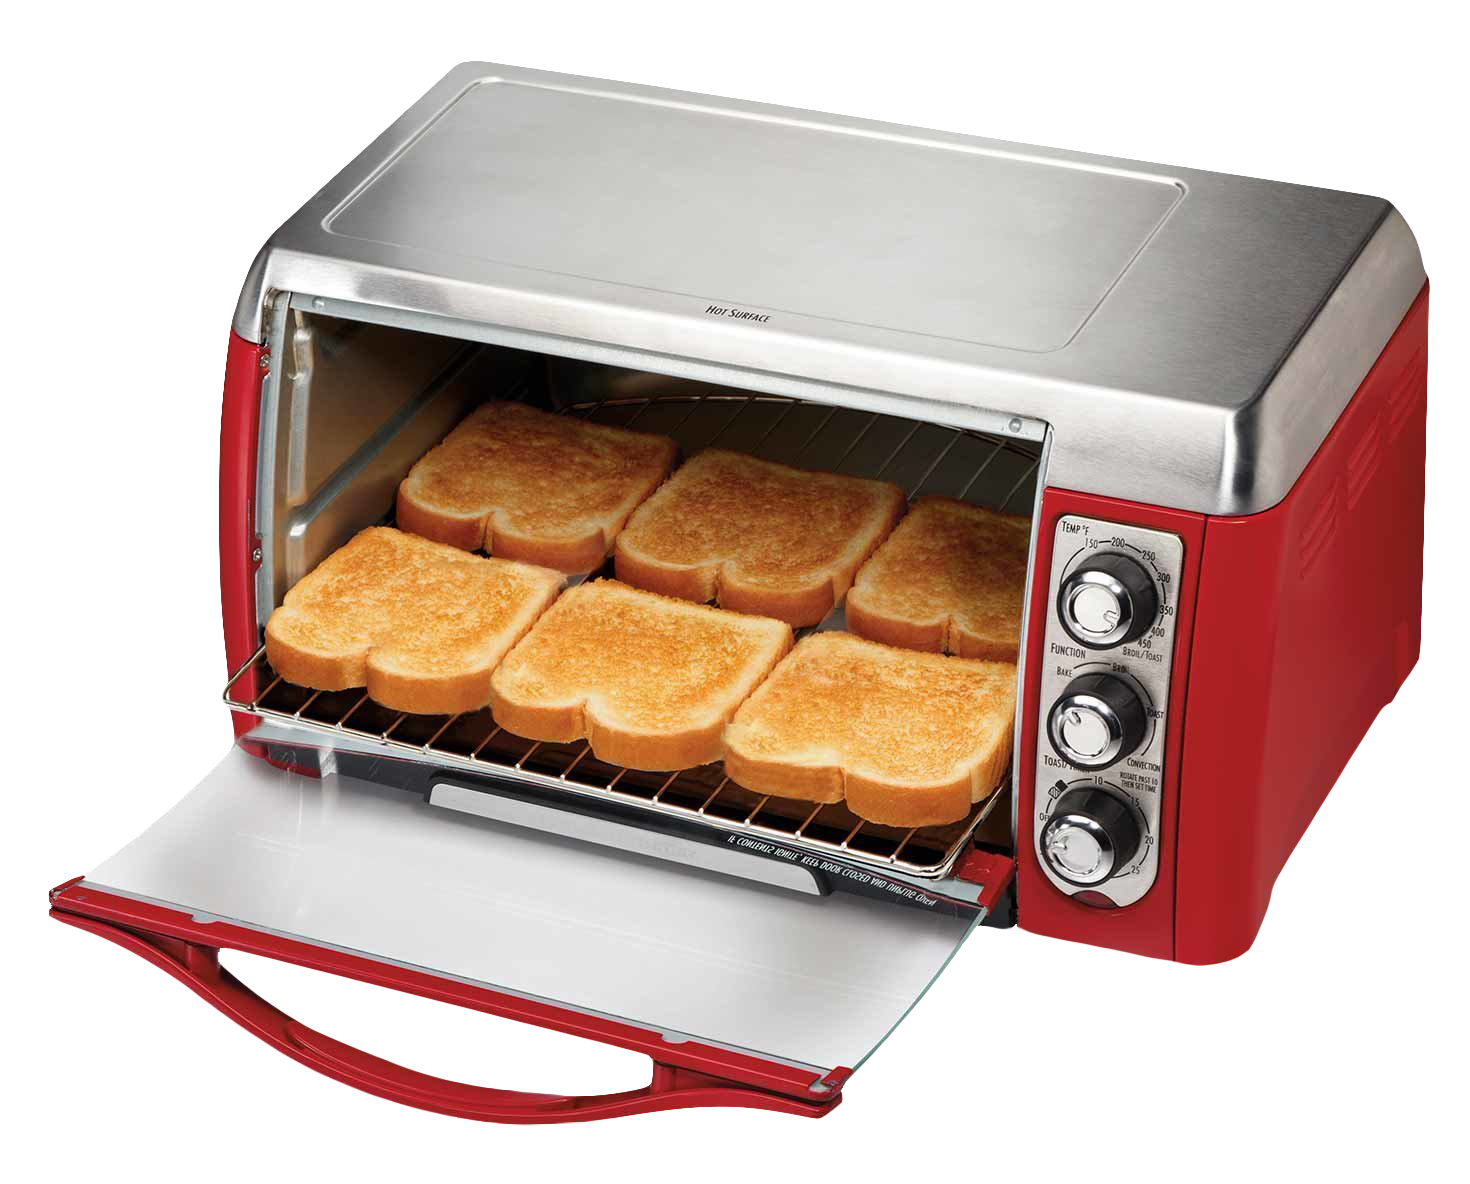 Toaster microwave png image. Oven clipart jpg stock